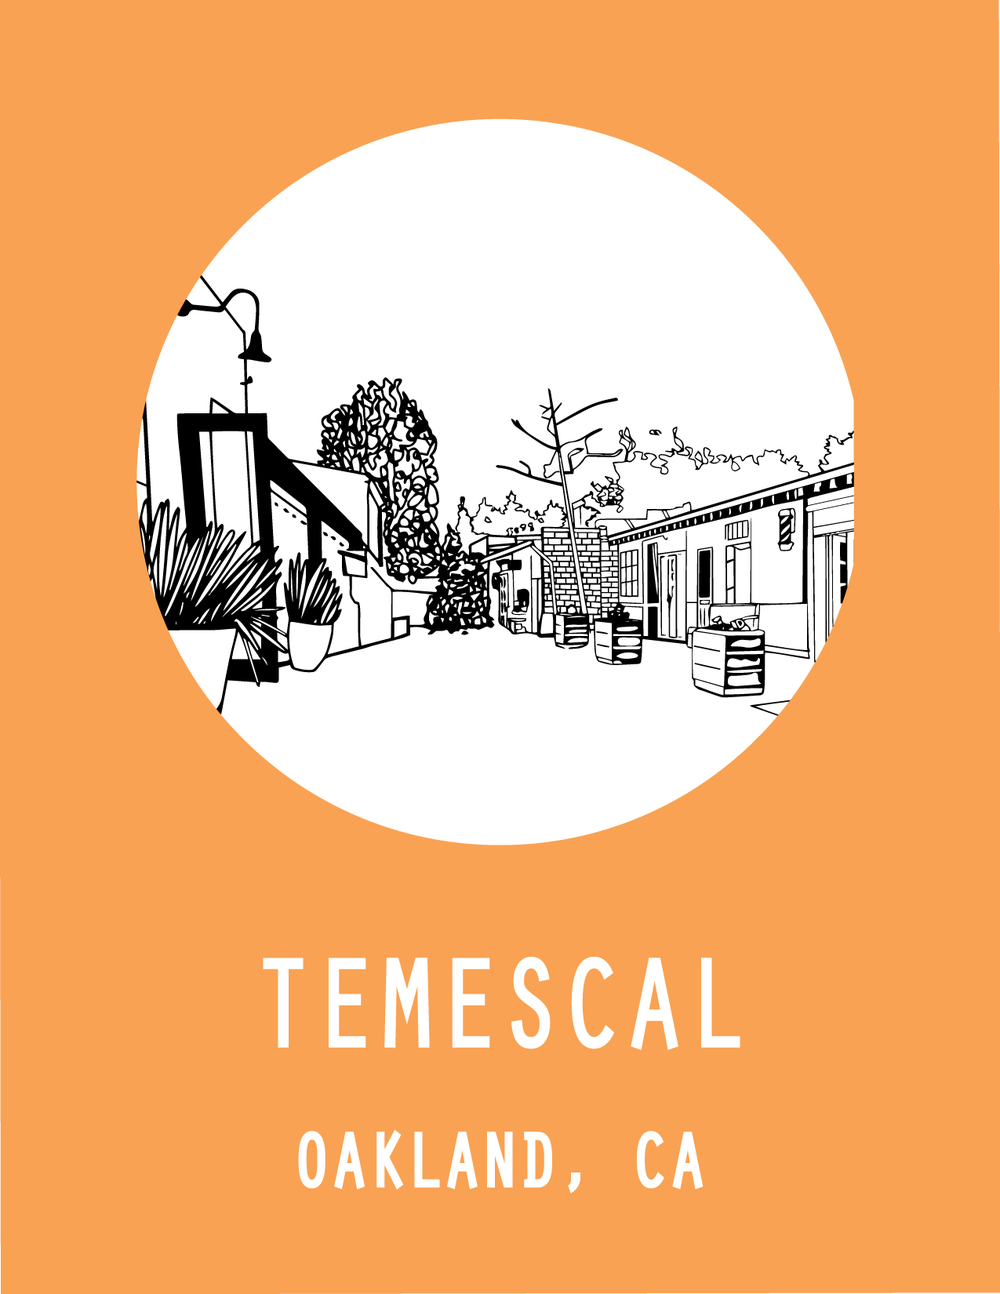 Temescal, Oakland, CA, USA  Find your next adventure in the alleys and sunshine of Temescal.